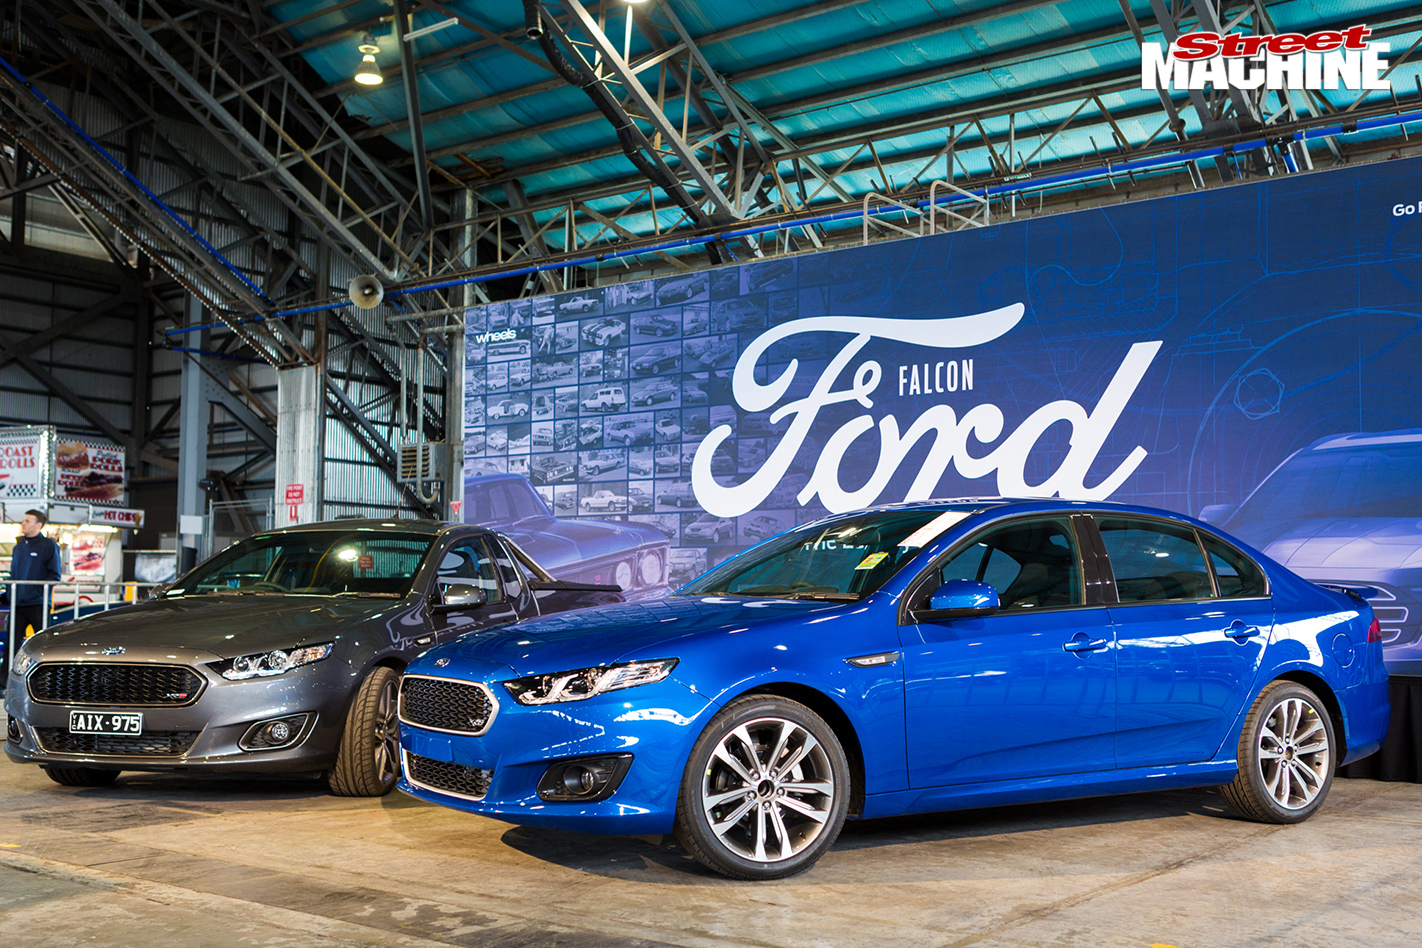 FORD-FALCON-THE-LEGACY-CONTINUES-photo5